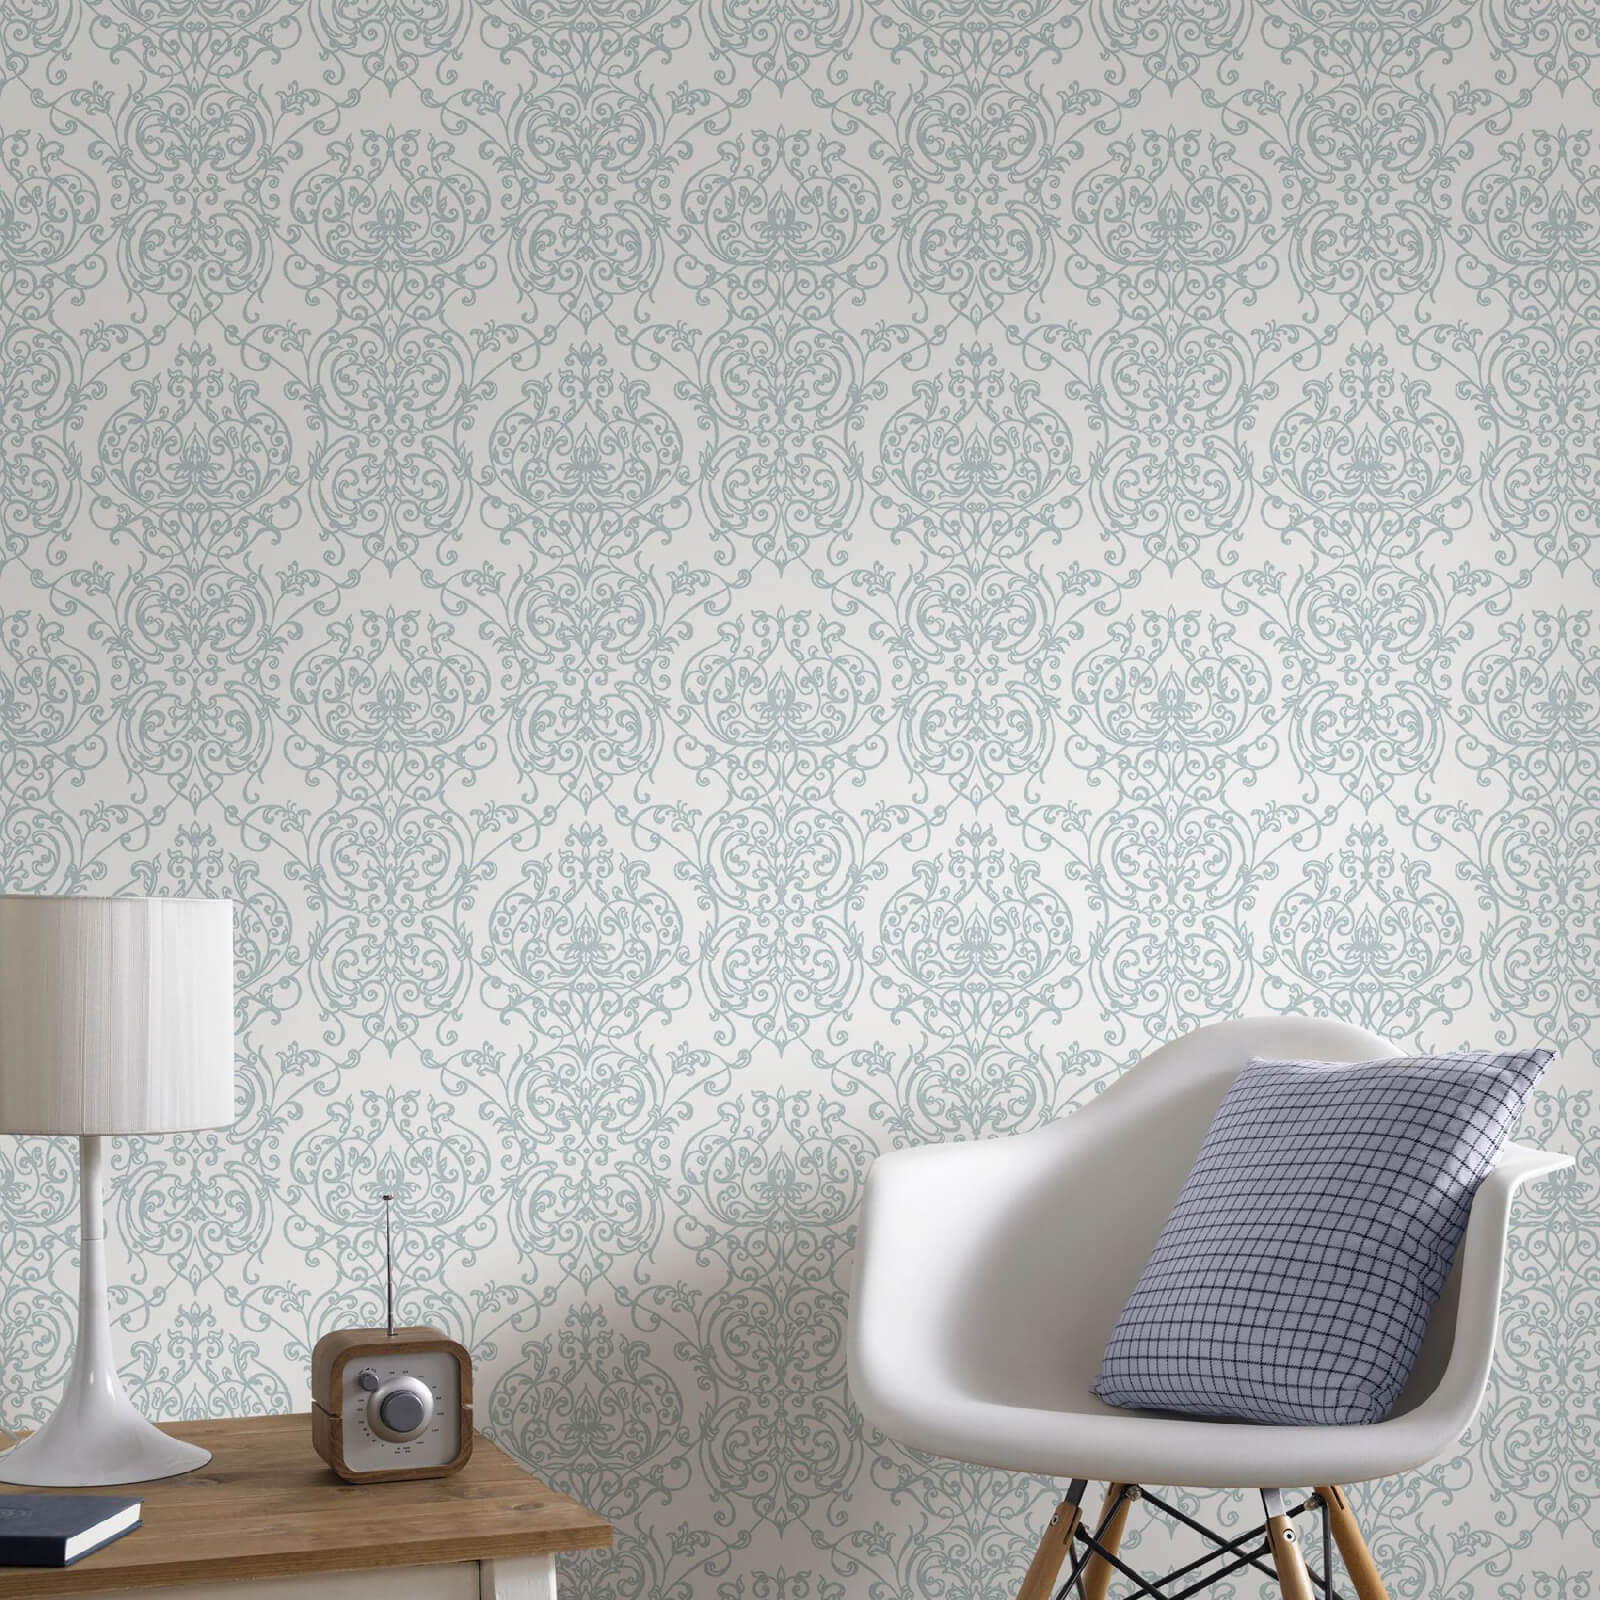 Superfresco Empress Glitter Damask Wallpaper - Duck Egg/White